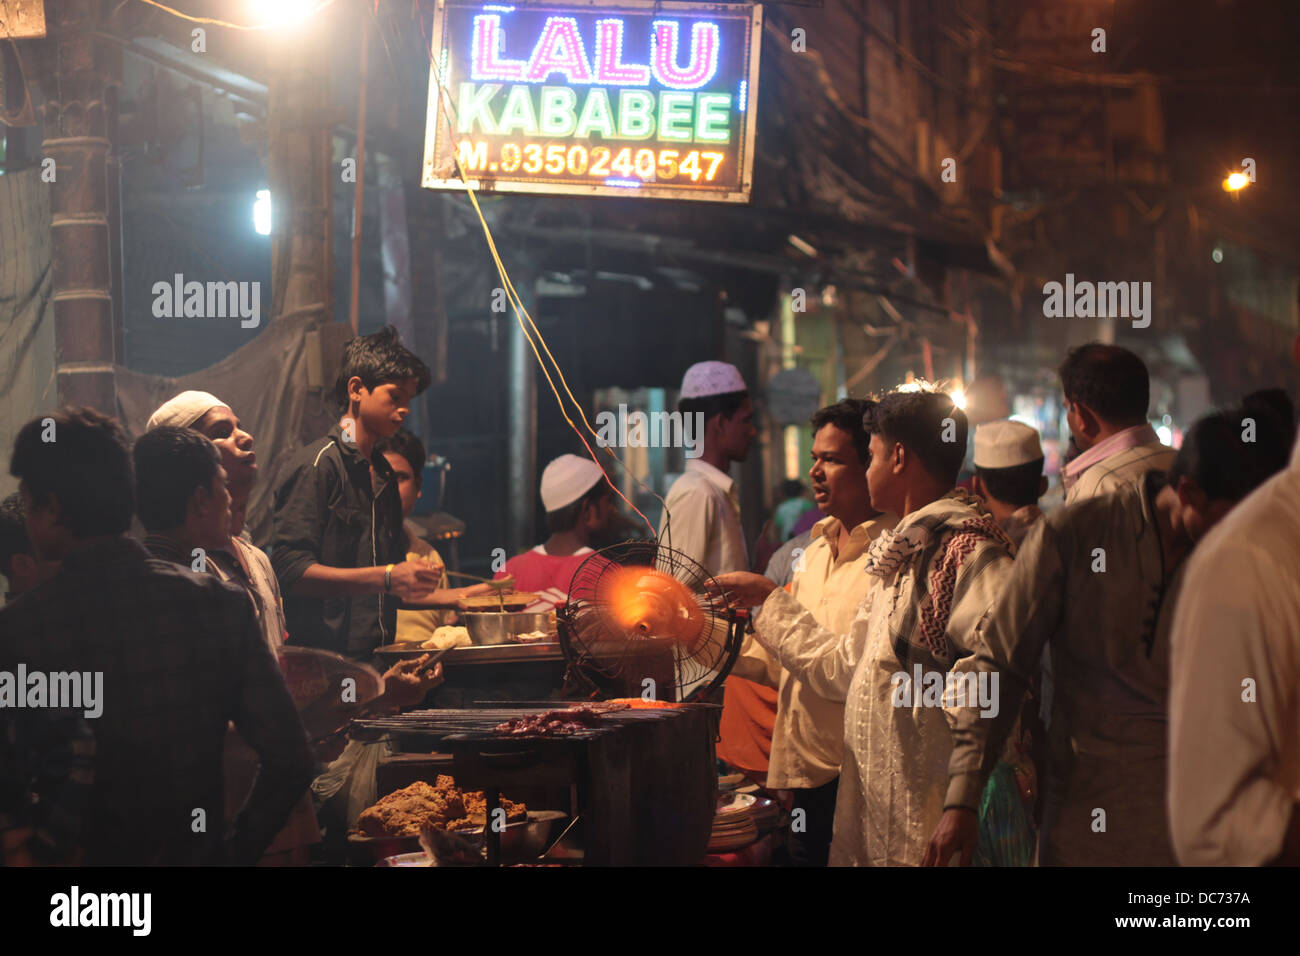 Muslims gather around a food stall in Delhi, India, on the occasion of Eid festival. - Stock Image